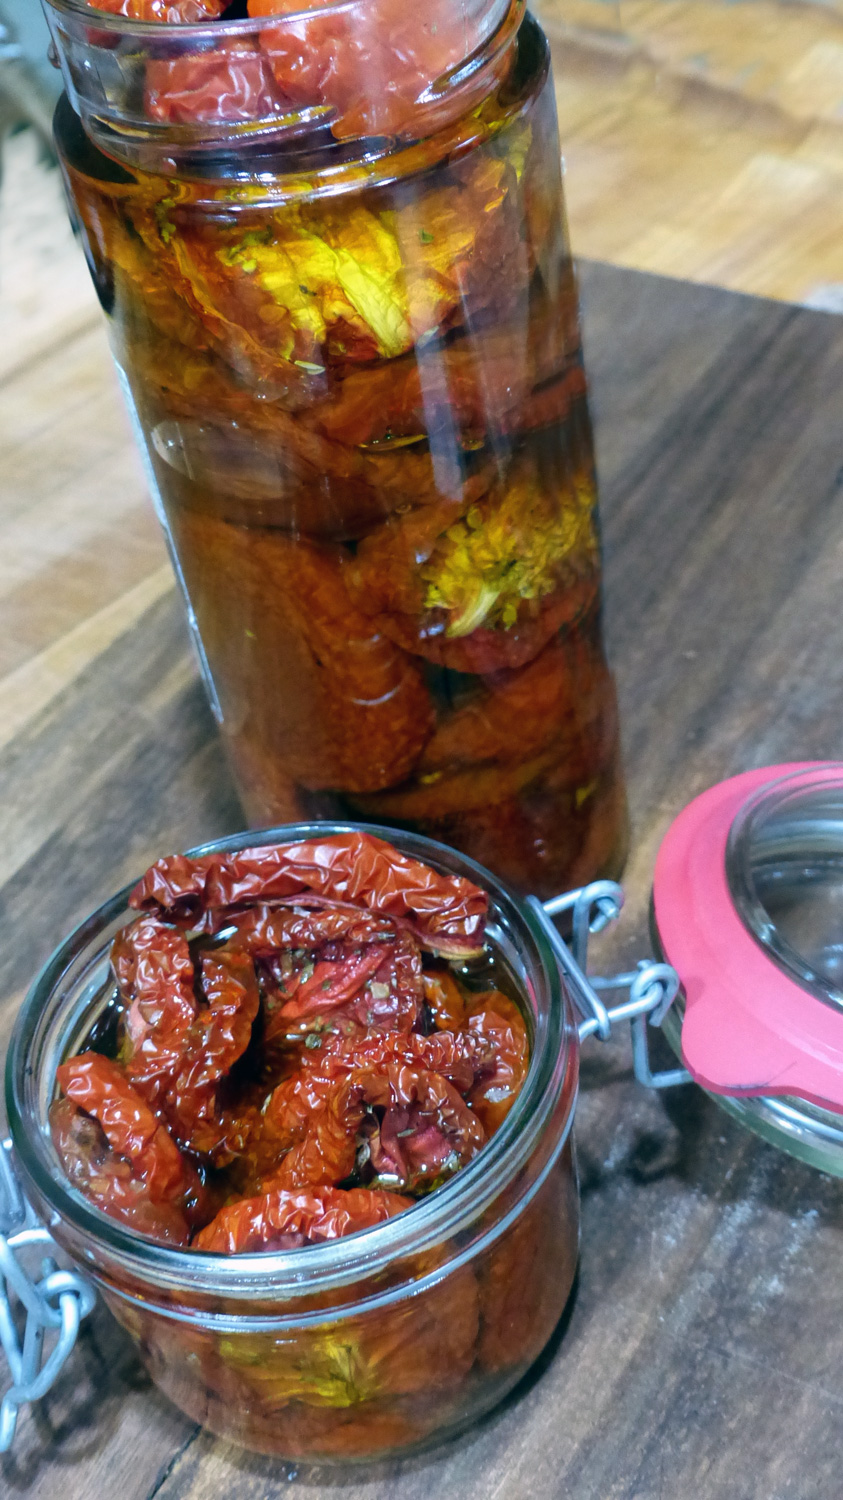 Oven dried tomatoes   can made a placed in a jar in your fridge, then used for various recipes.